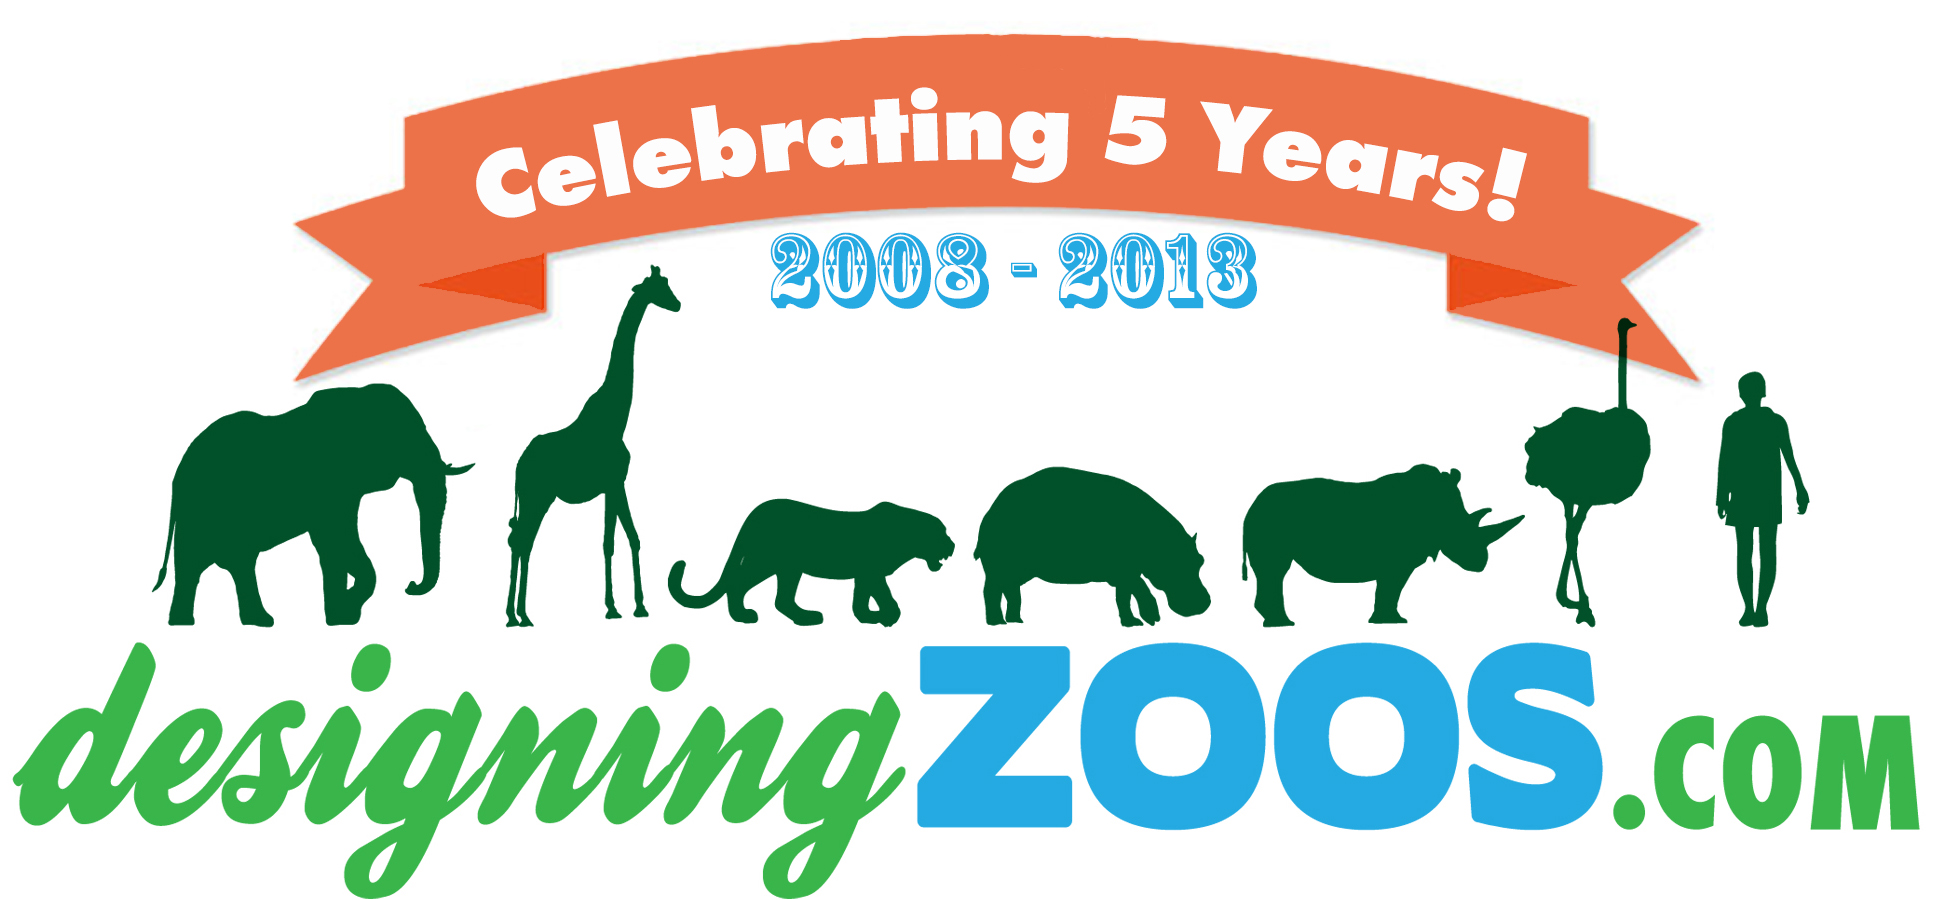 1942x900 Happy 5th Anniversary! Designing Zoos